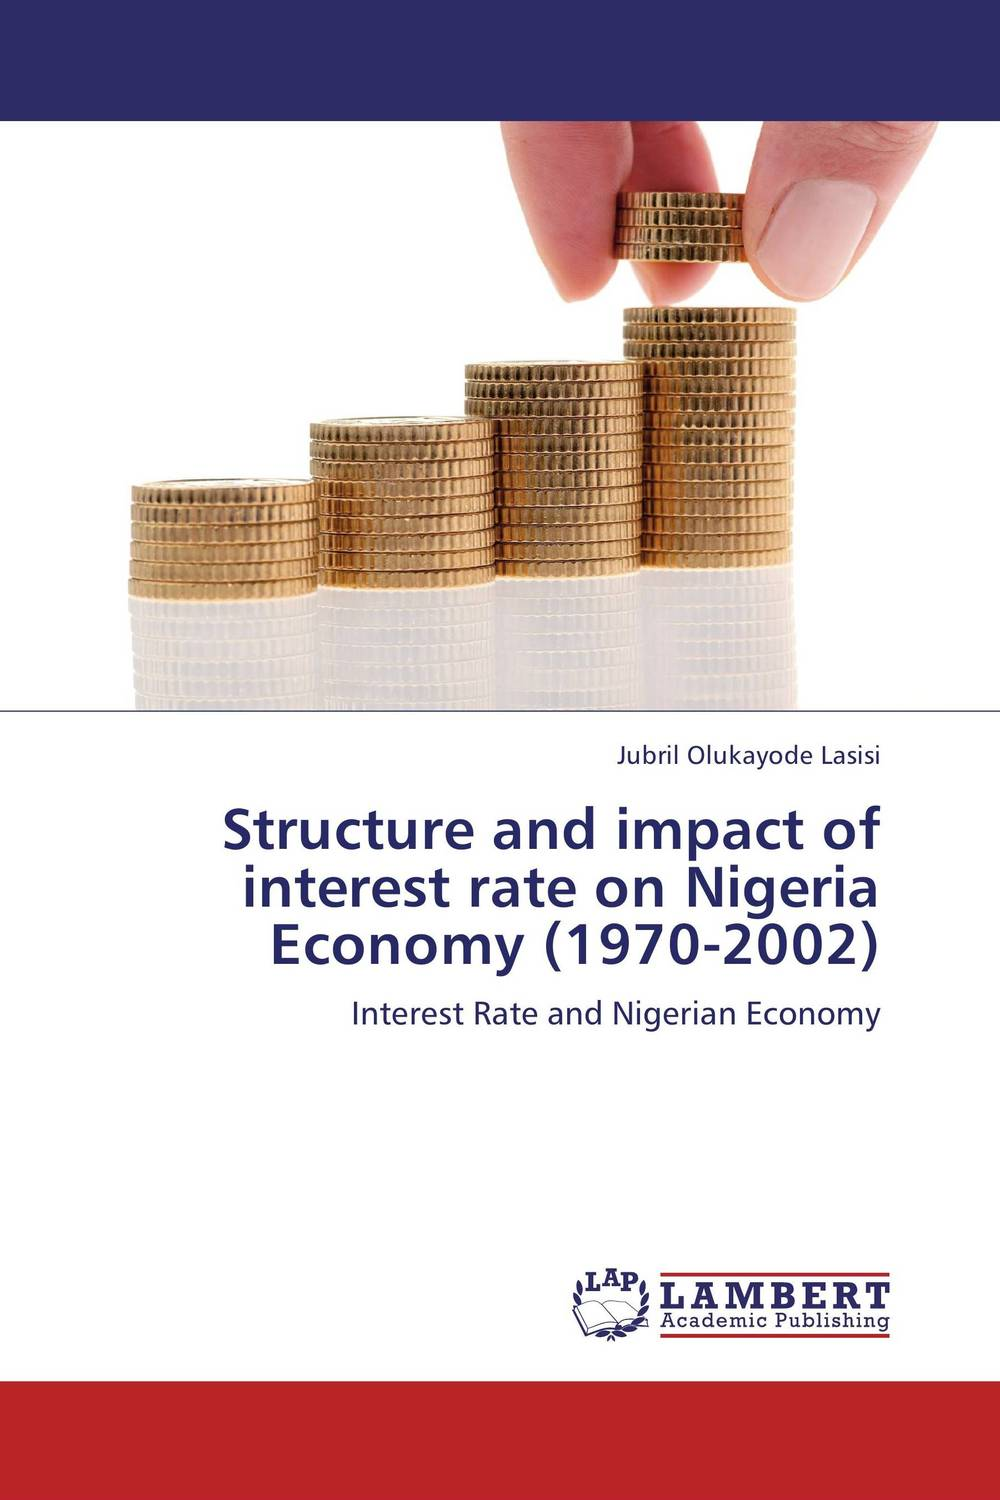 Structure and impact of interest rate on Nigeria Economy (1970-2002) impact of youth unemployment on crime rate in lagos state nigeria